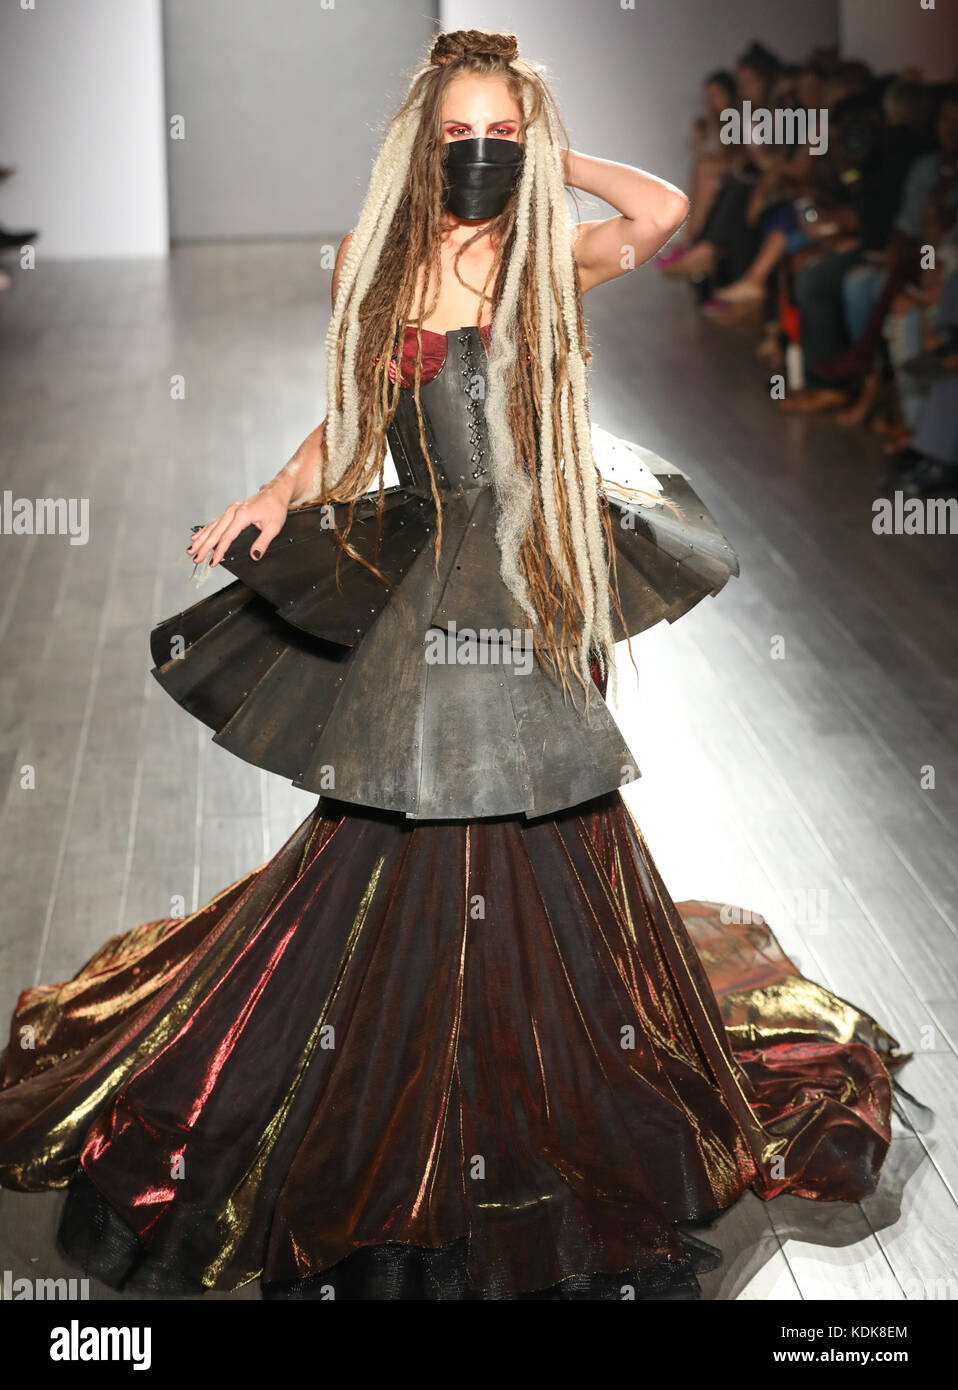 New York Fashion Week Ss 2018 Bad Butterfly Runway Featuring Stock Photo Alamy